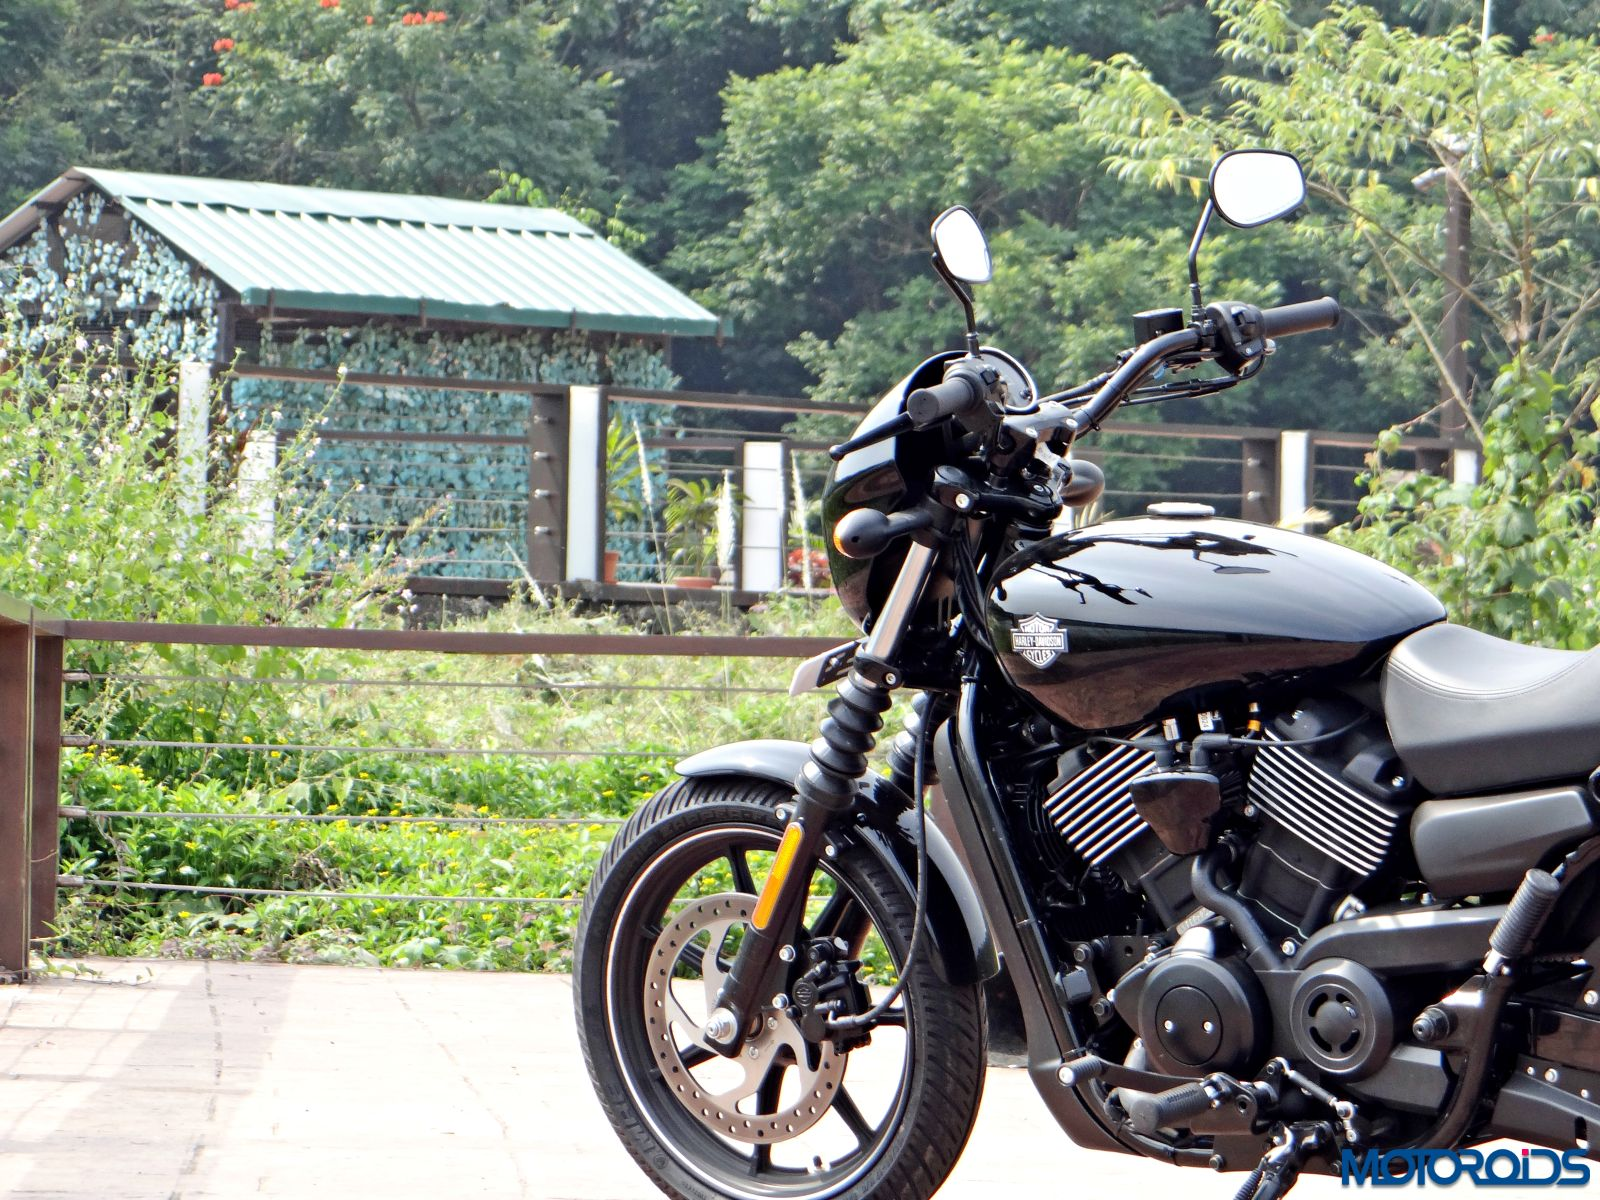 leafmotor as well 1000039945 in addition 125 further Moped likewise 115740 Wiring Diagrams Indian Two Wheelers. on motorcycle wiring harness